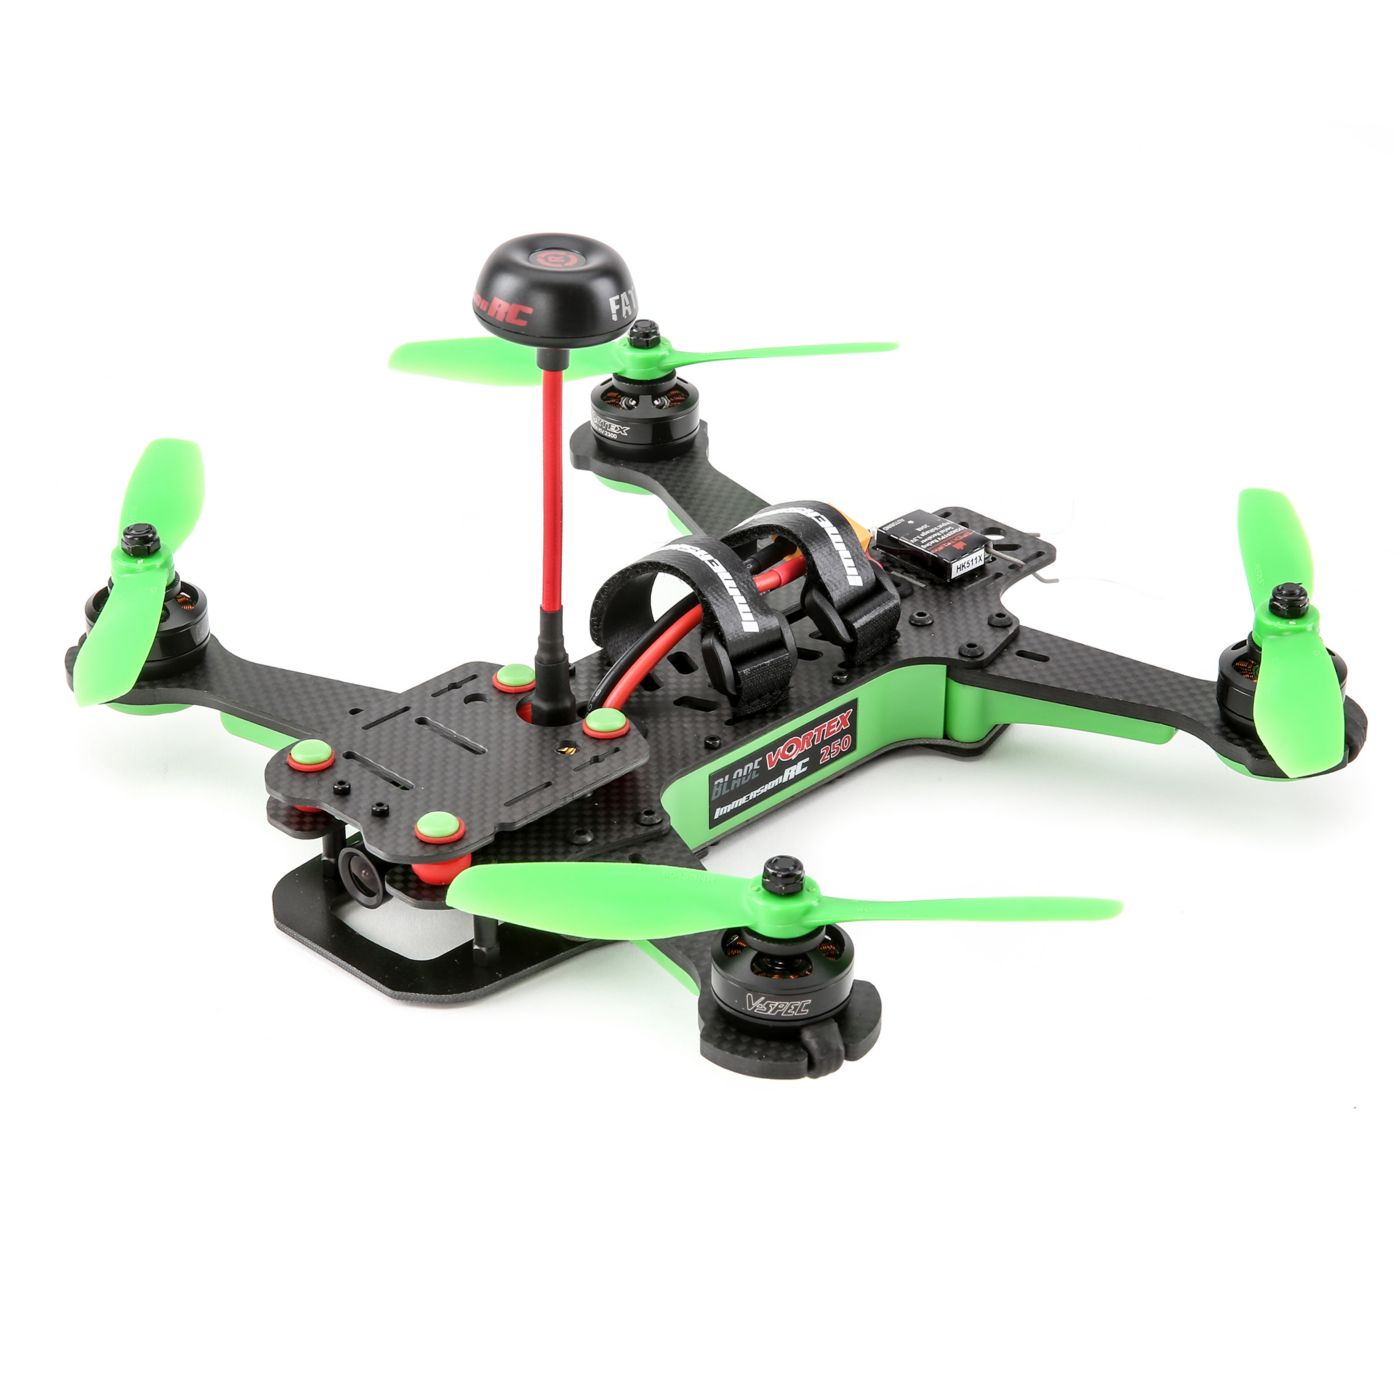 Blade® Vortex 250 Pro BNF Basic FPV Racing RC Quadcopter